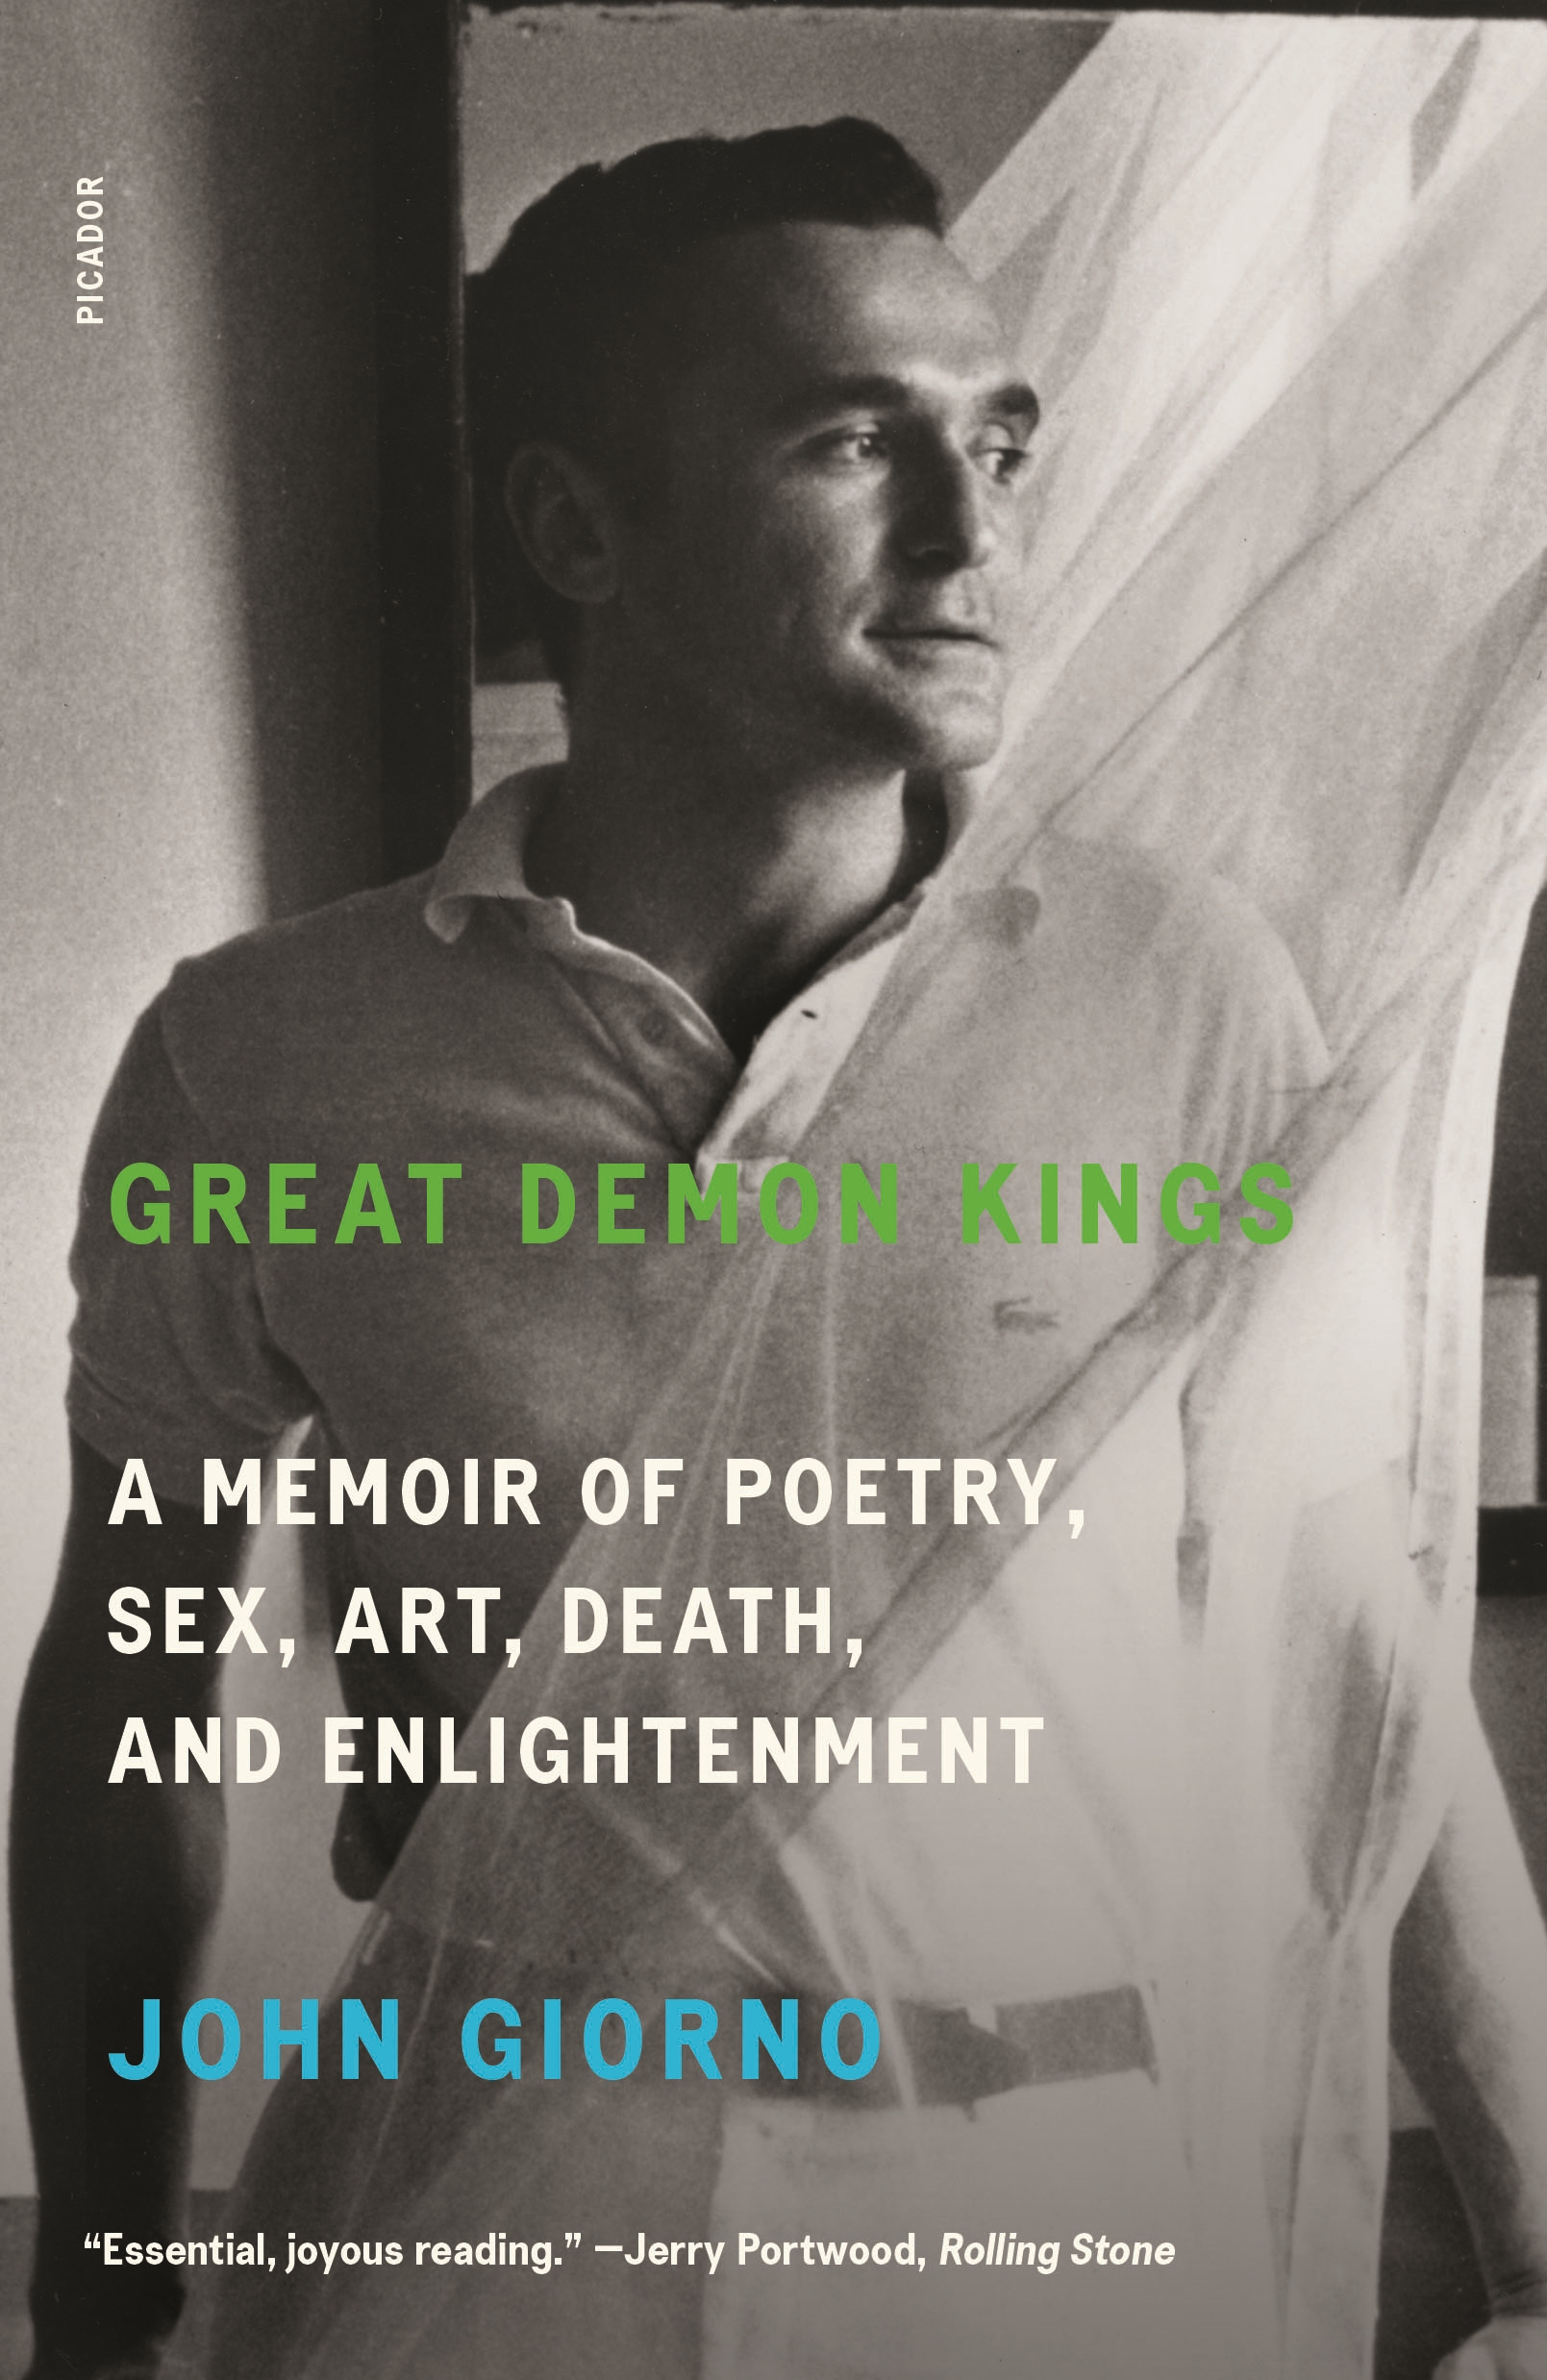 Great Demon Kings A Memoir of Poetry, Sex, Art, Death, and Enlightenment